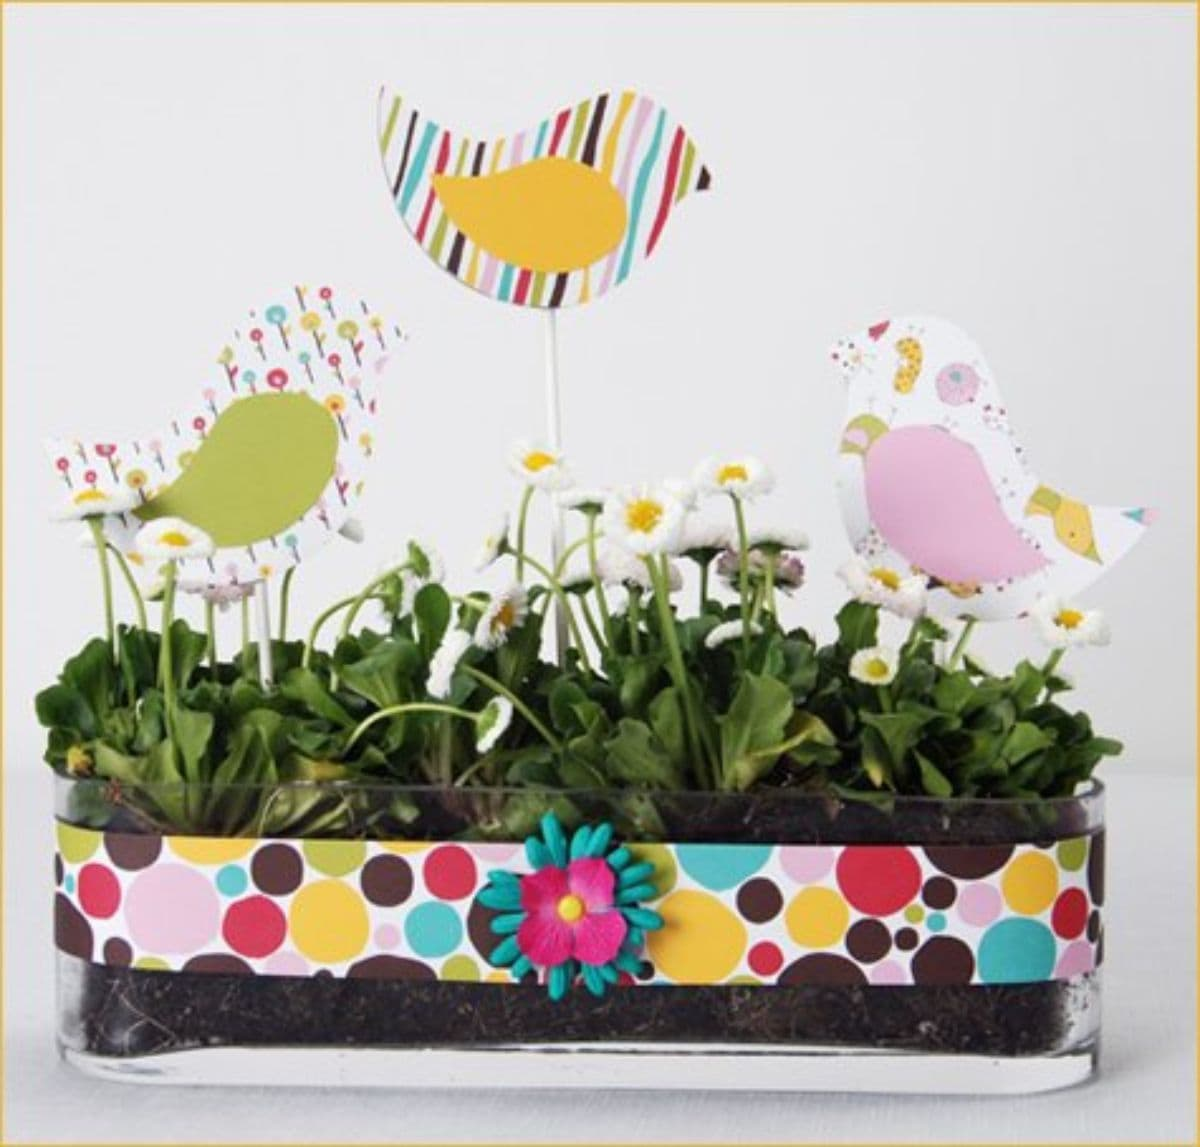 A clear tub is filled with green foliage. There is a spotty ribbon wrapped aroun dit and sticking out of the top are 3 paper birds